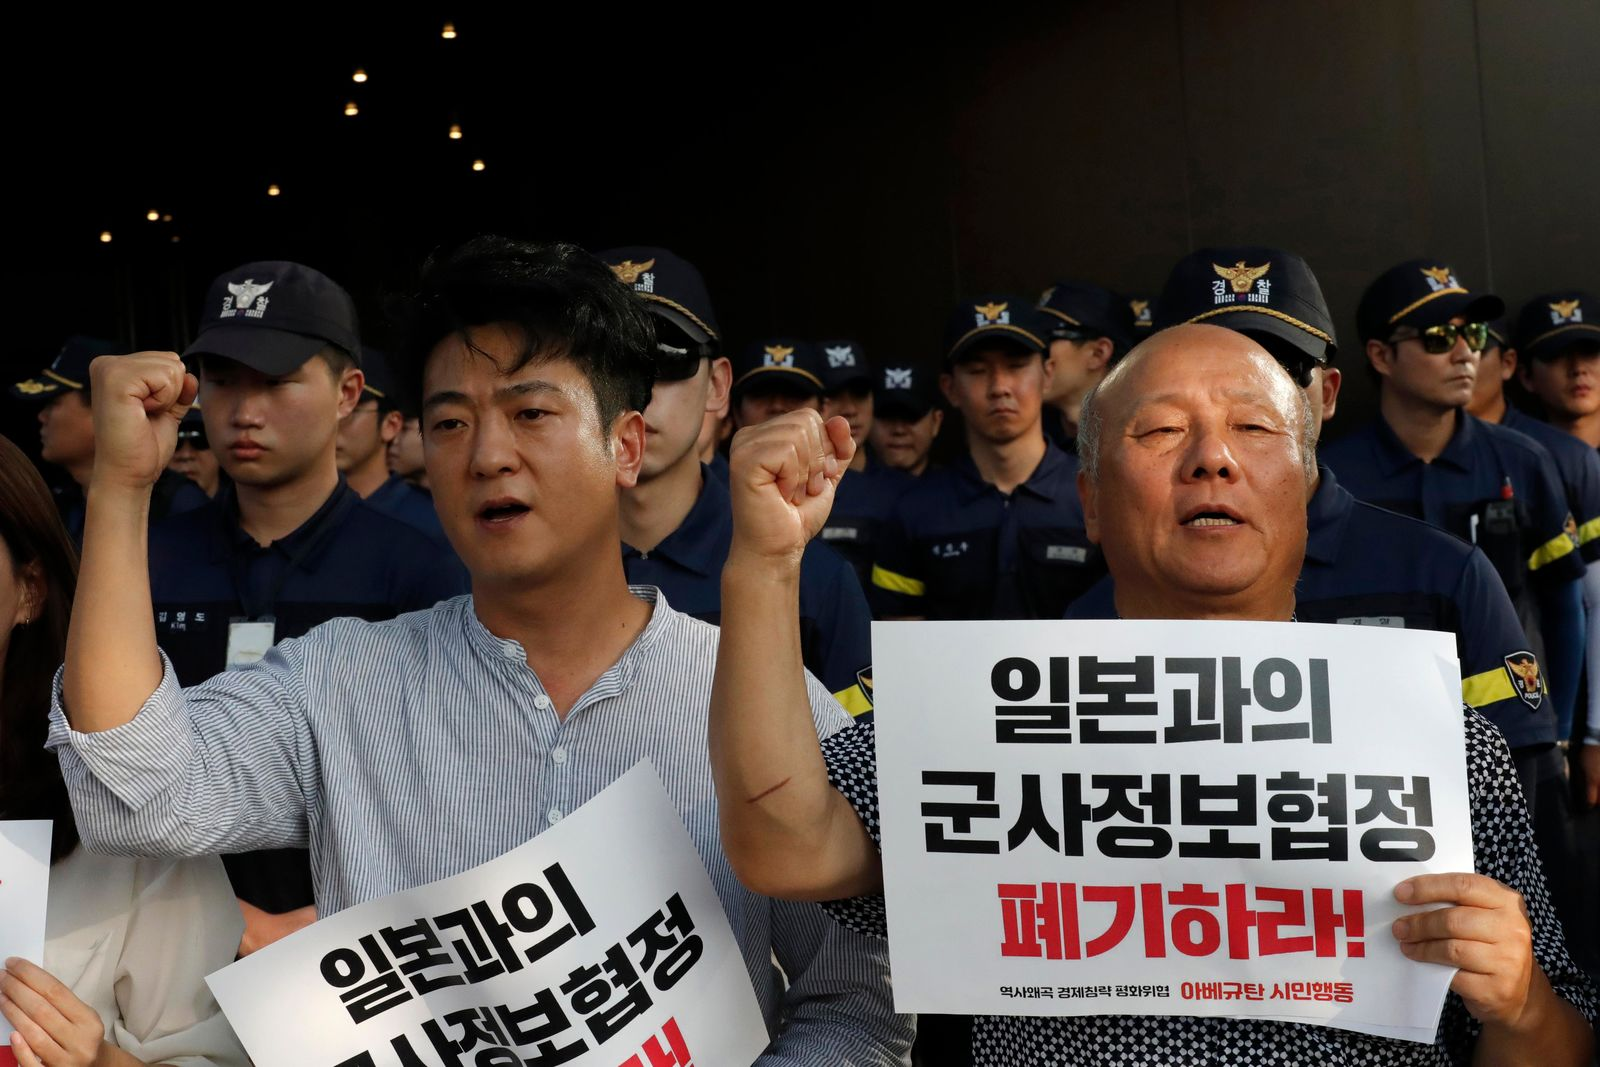 South Korean protesters shout slogans during a rally demanding the South Korean government to abolish the General Security of Military Information Agreement, or GSOMIA, an intelligence-sharing agreement between South Korea and Japan, in front of Japanese embassy in Seoul, South Korea, Thursday, Aug. 22, 2019.of Military Information Agreement, or GSOMIA. (AP Photo/Lee Jin-man)